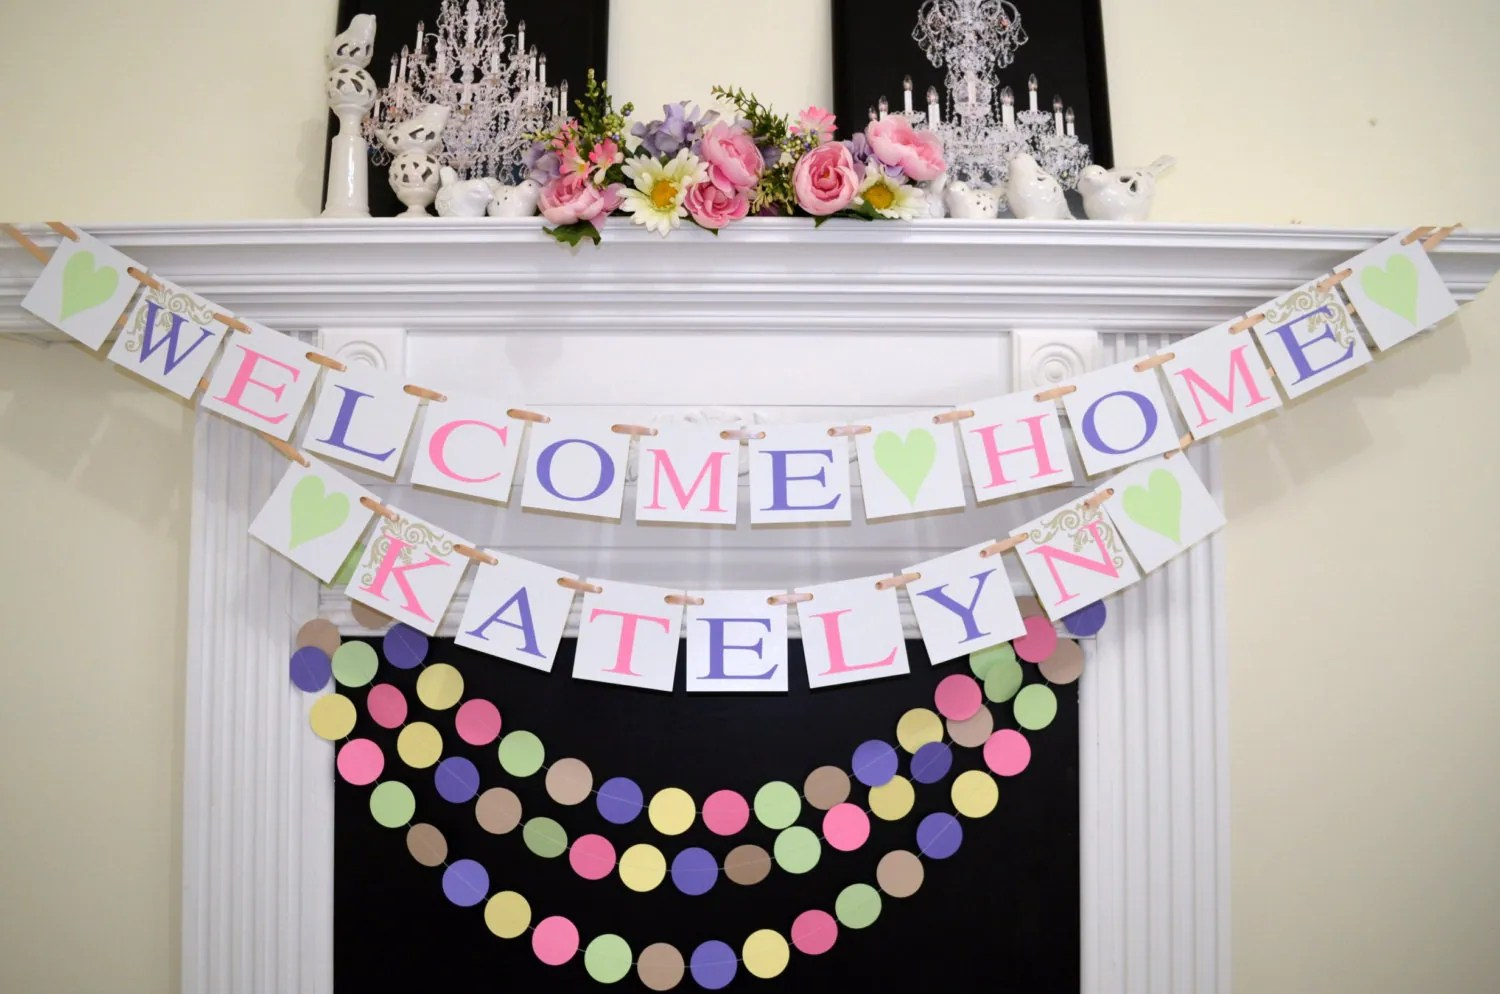 Welcome Home Baby Decoration Ideas - Elitflat